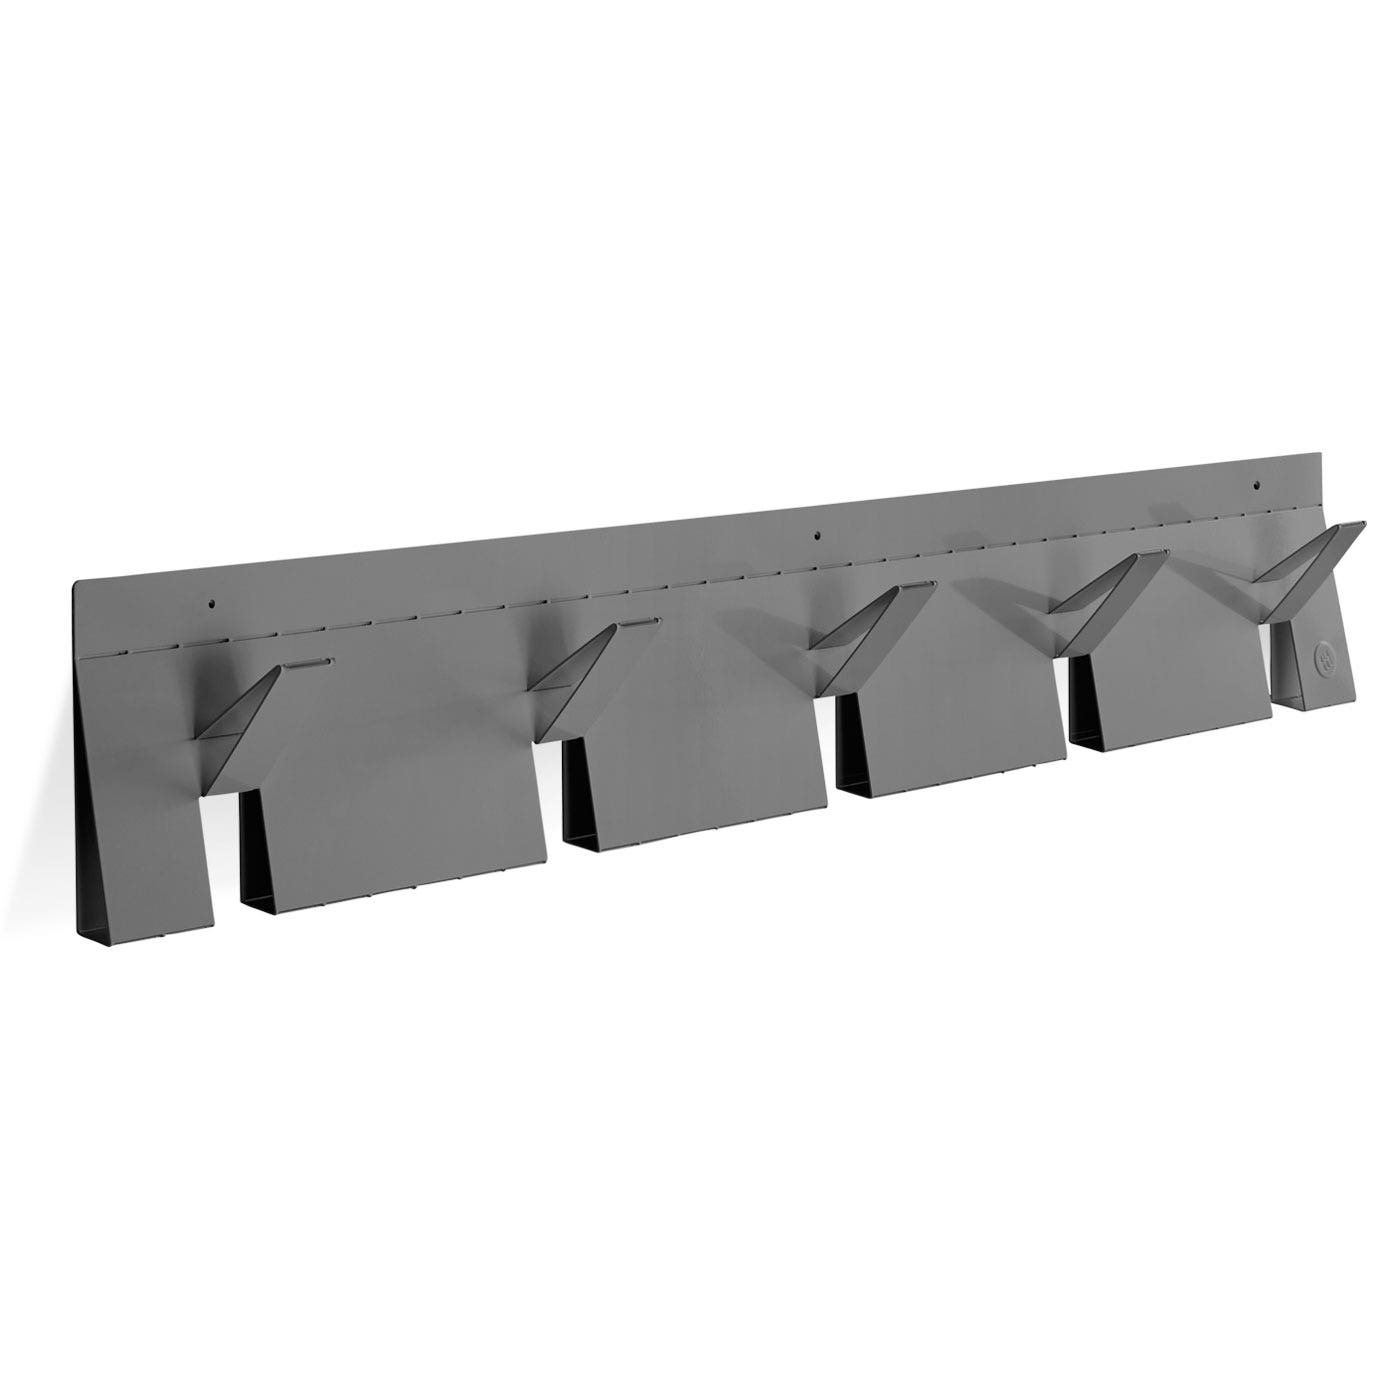 Previous image 2D:3D Grey Modern Wall Coat Rack ...